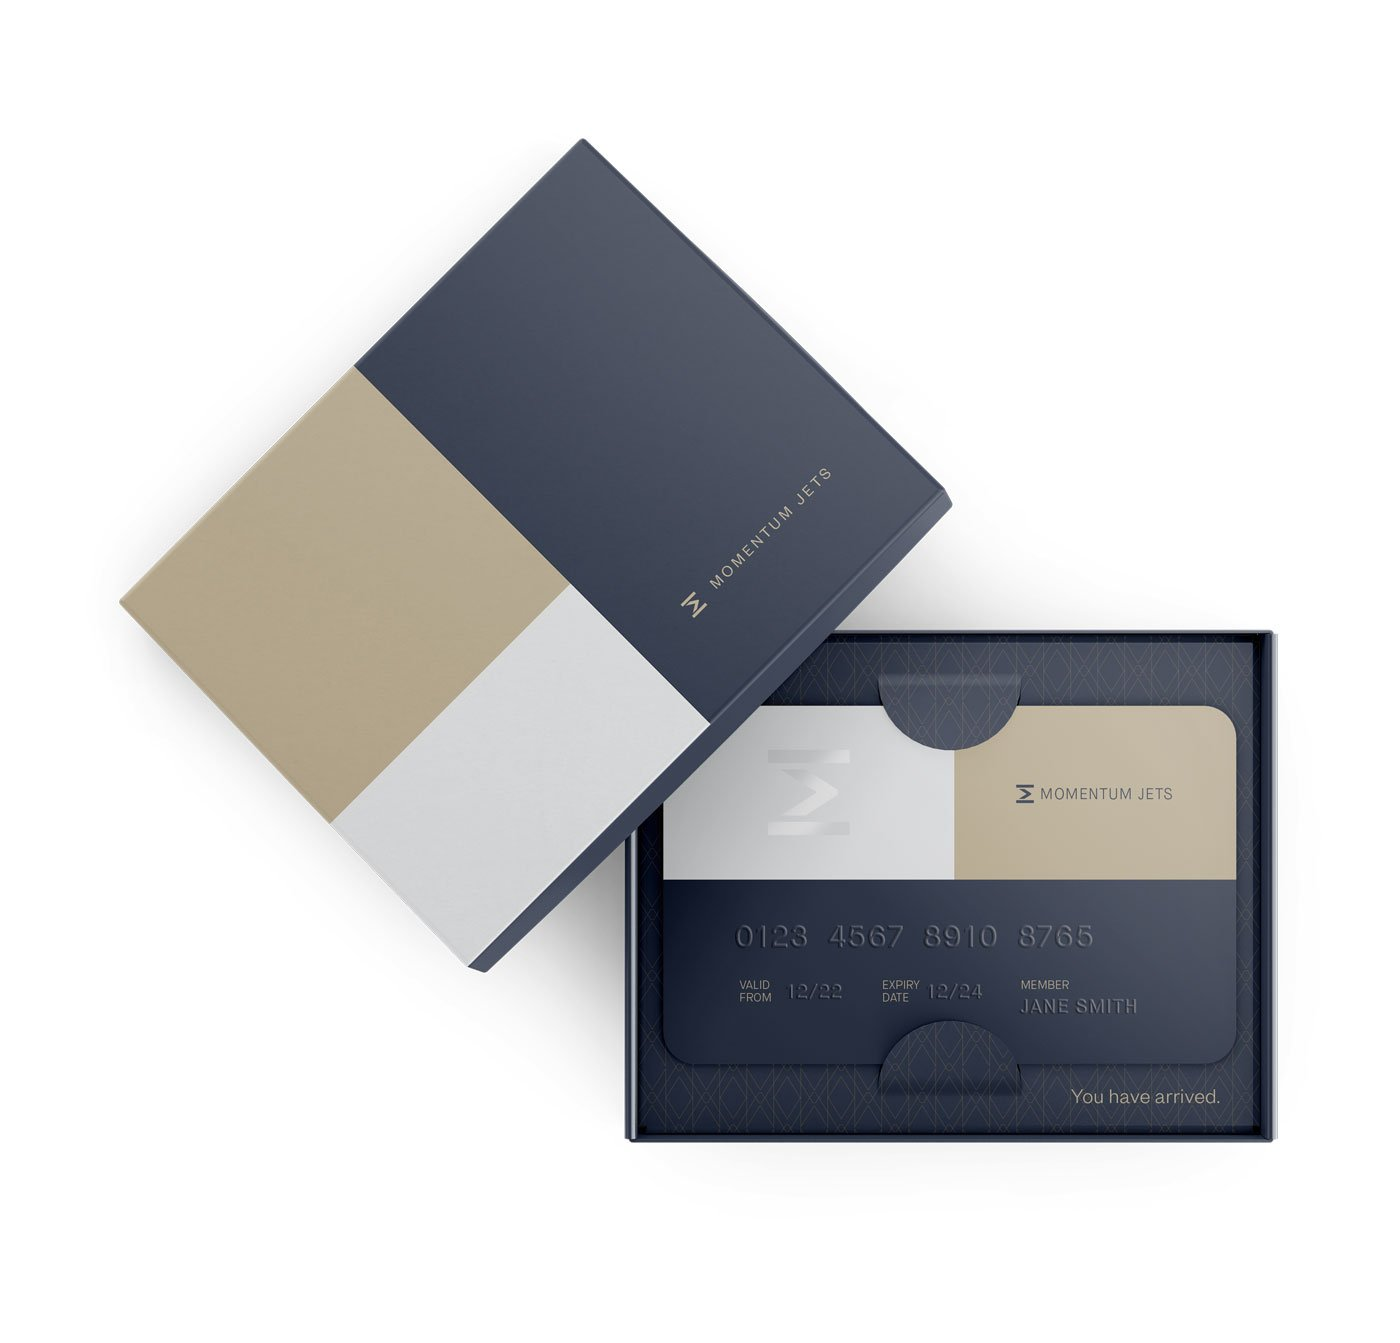 Private jet, luxury and executive travel brand membership card design